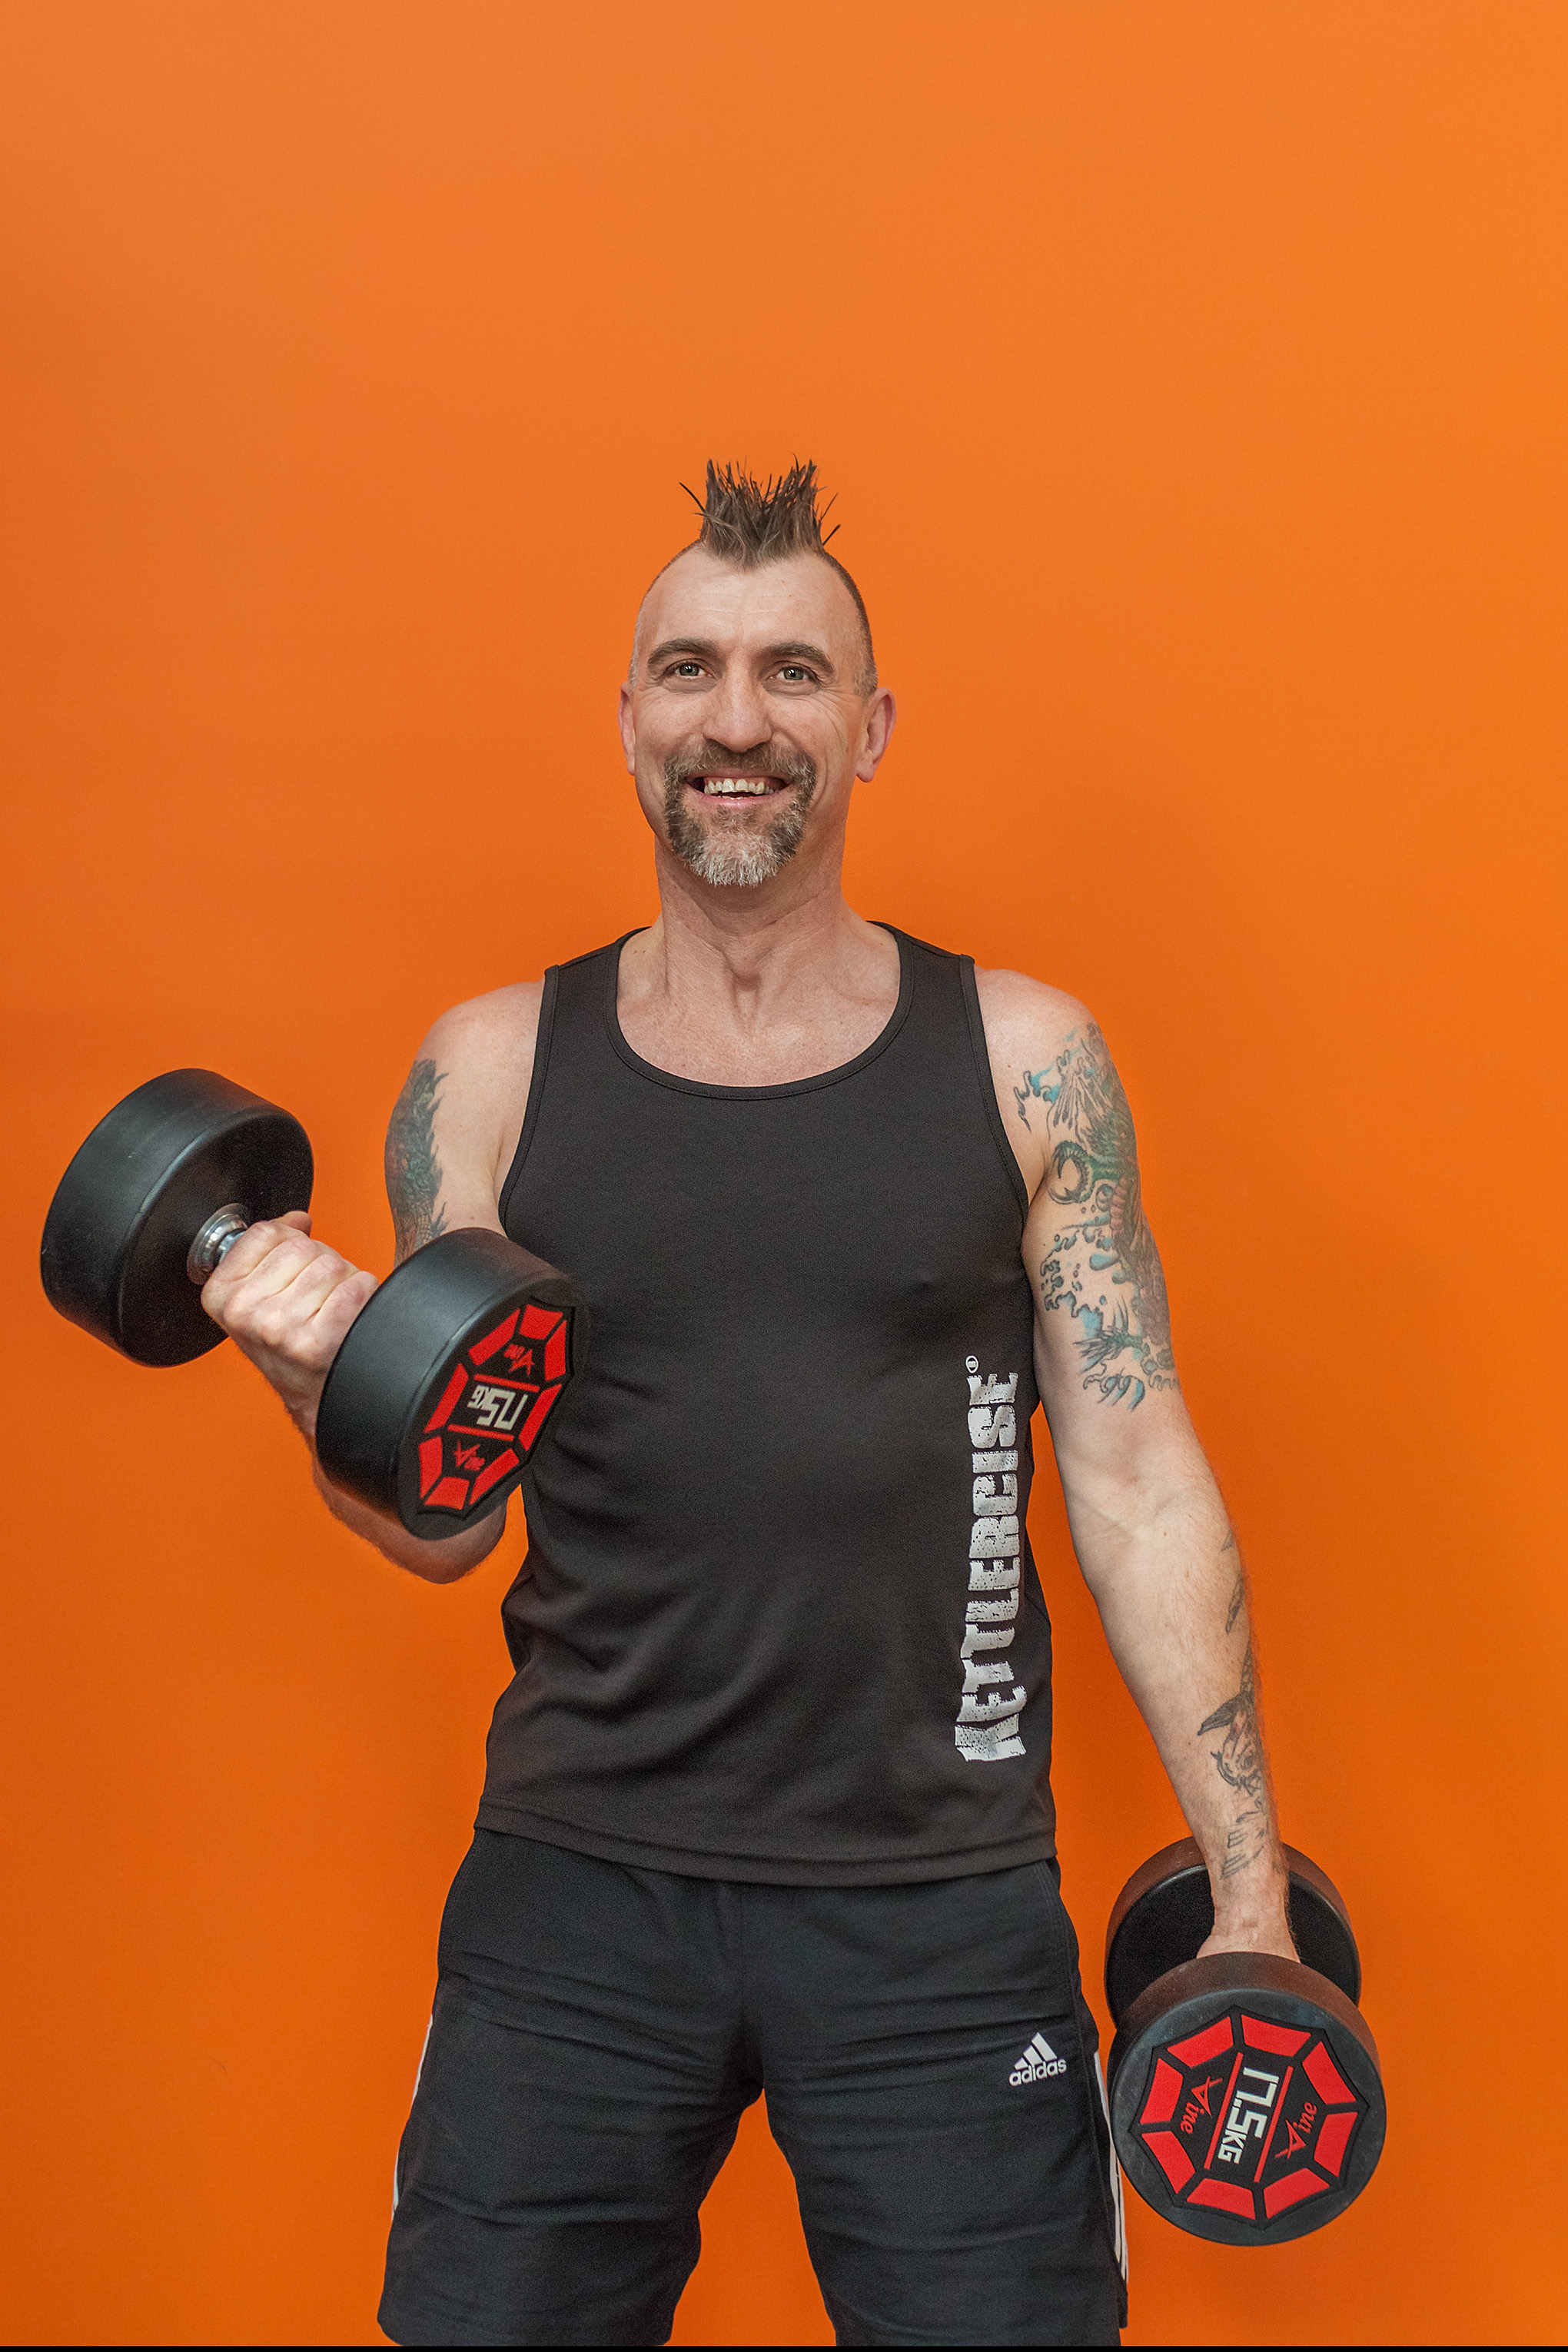 Personal trainer Launceston Cornwall